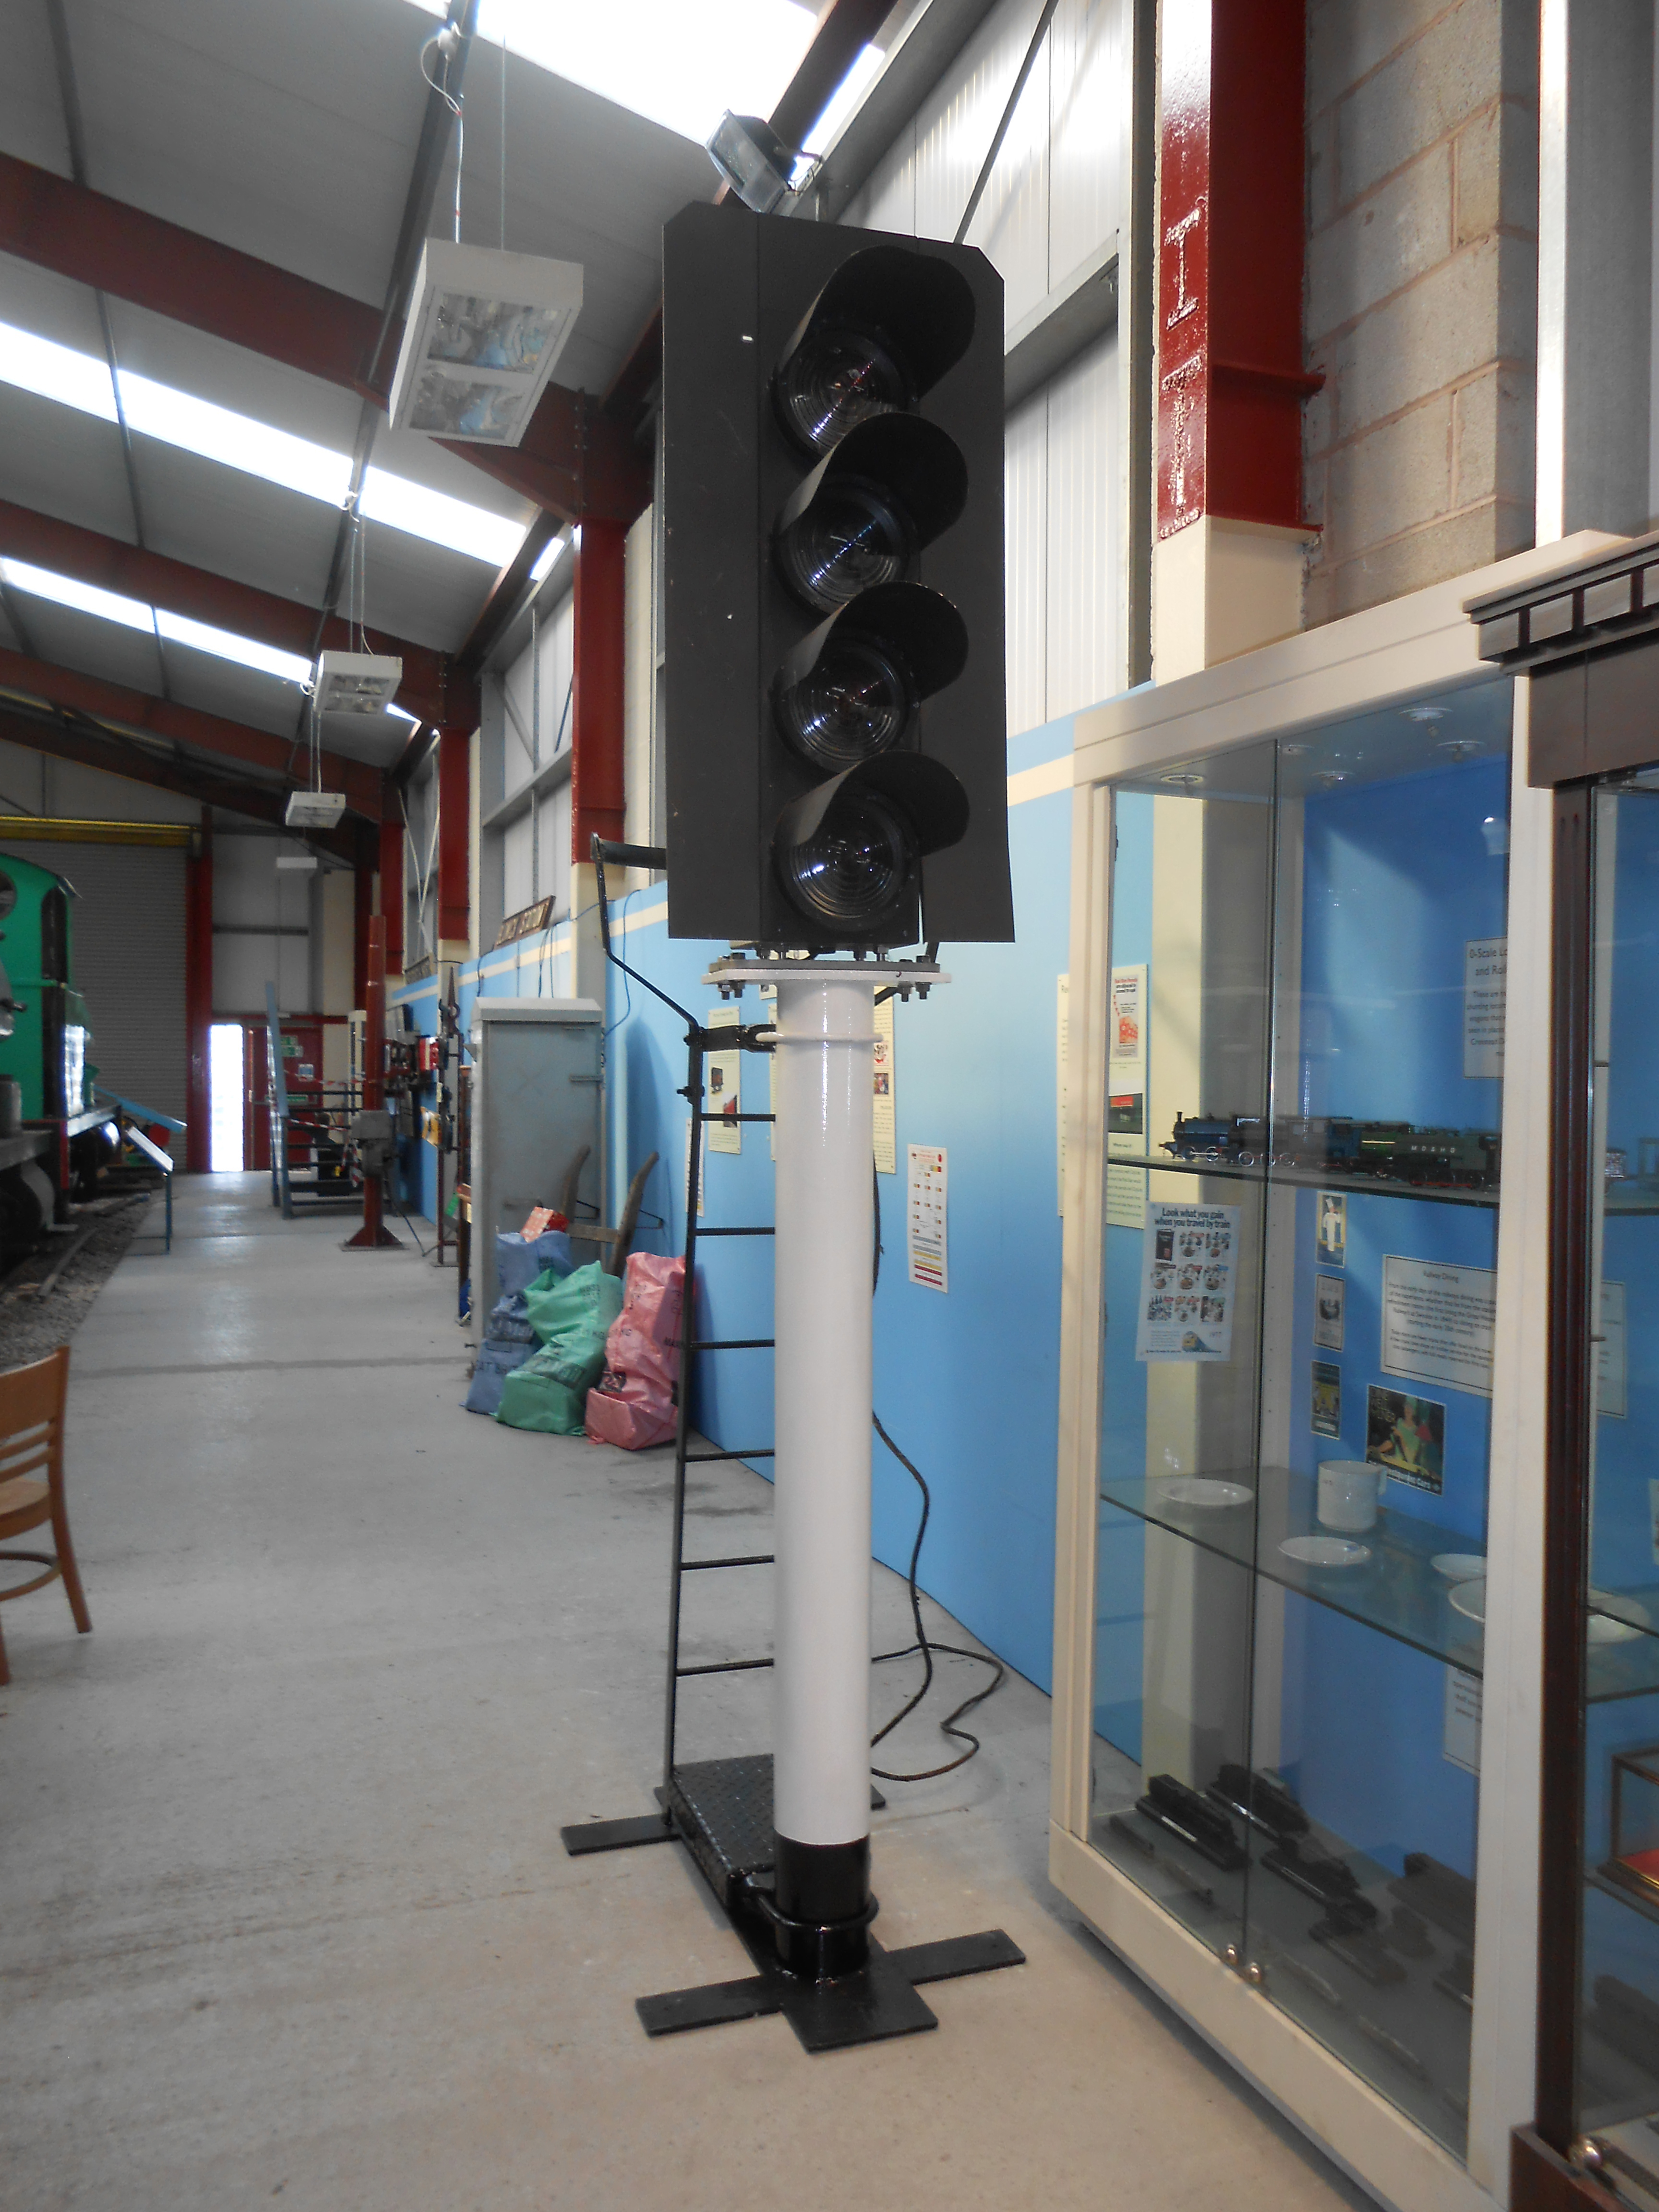 The restored signal post united with the lights in the Museum